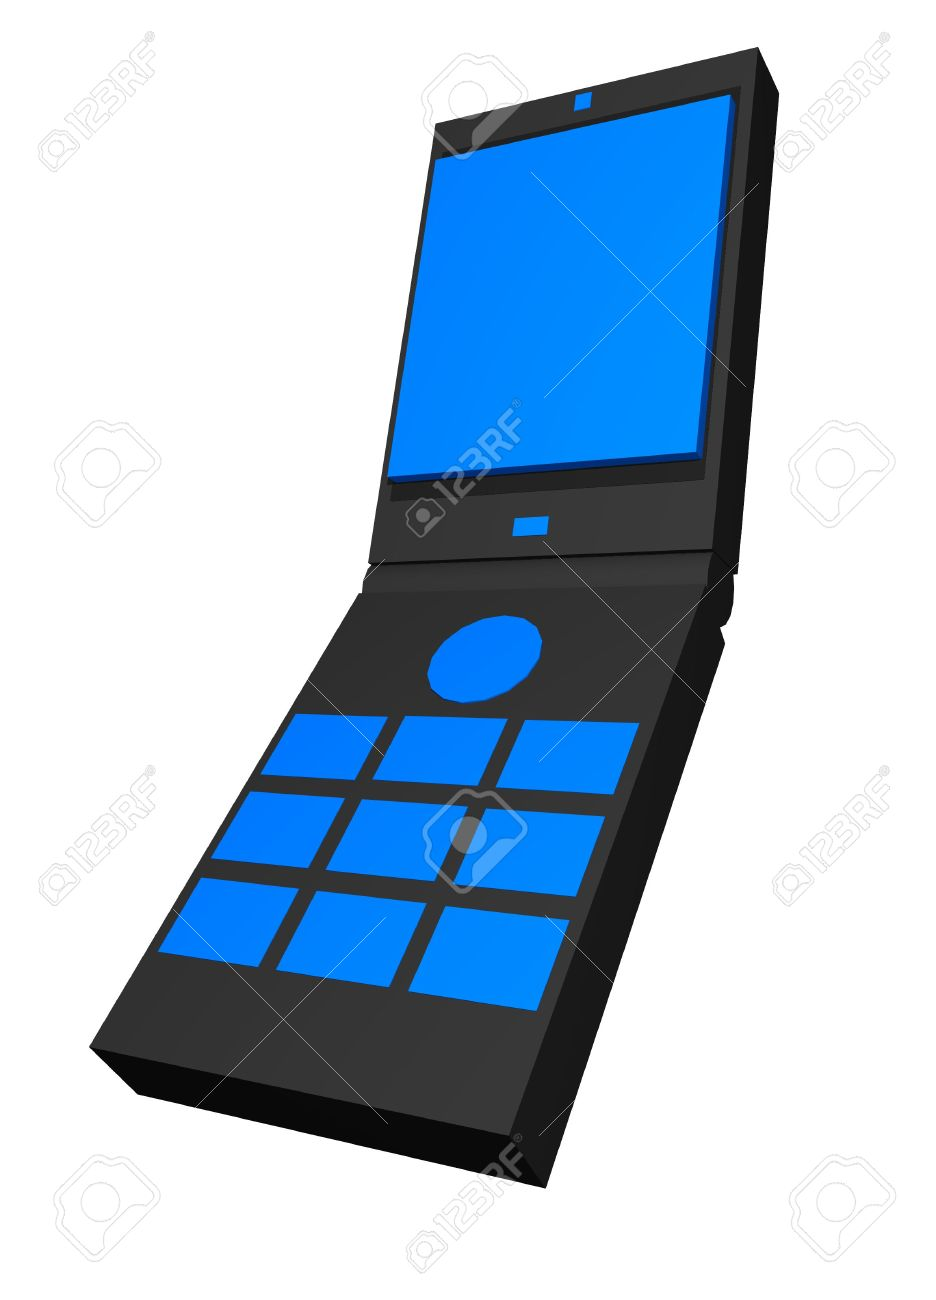 Clamshell Handphone Clip Art Stock Photo, Picture And Royalty Free.